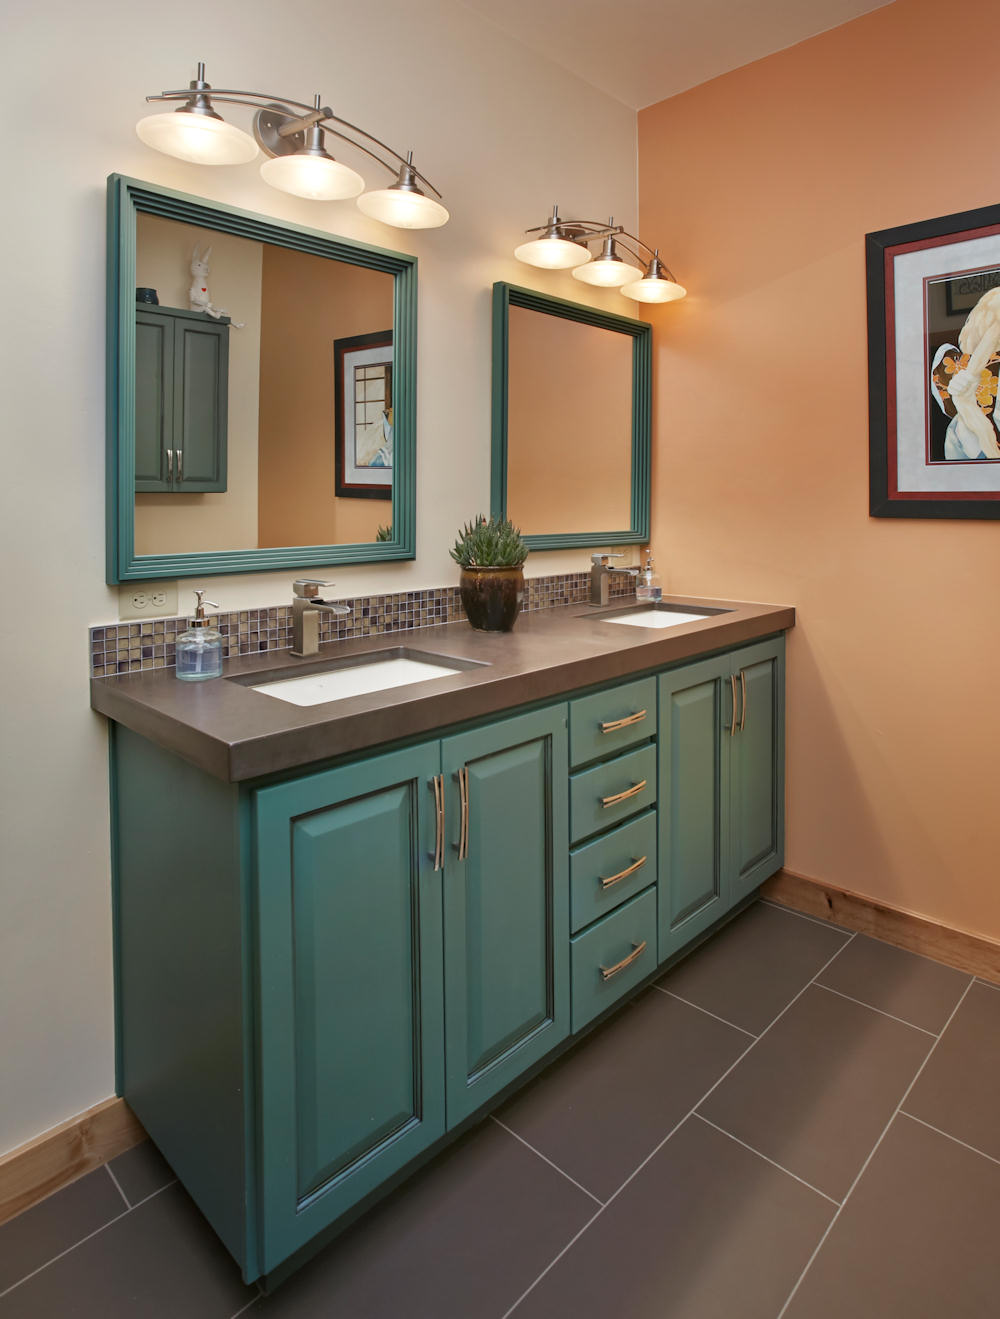 bathrooms kitchen remodeling tucson az accessible roll Eclectic Guest Bath Slate countertop with dual under mounted sinks and iridescent glass tile backsplash Pool bathroom remodel